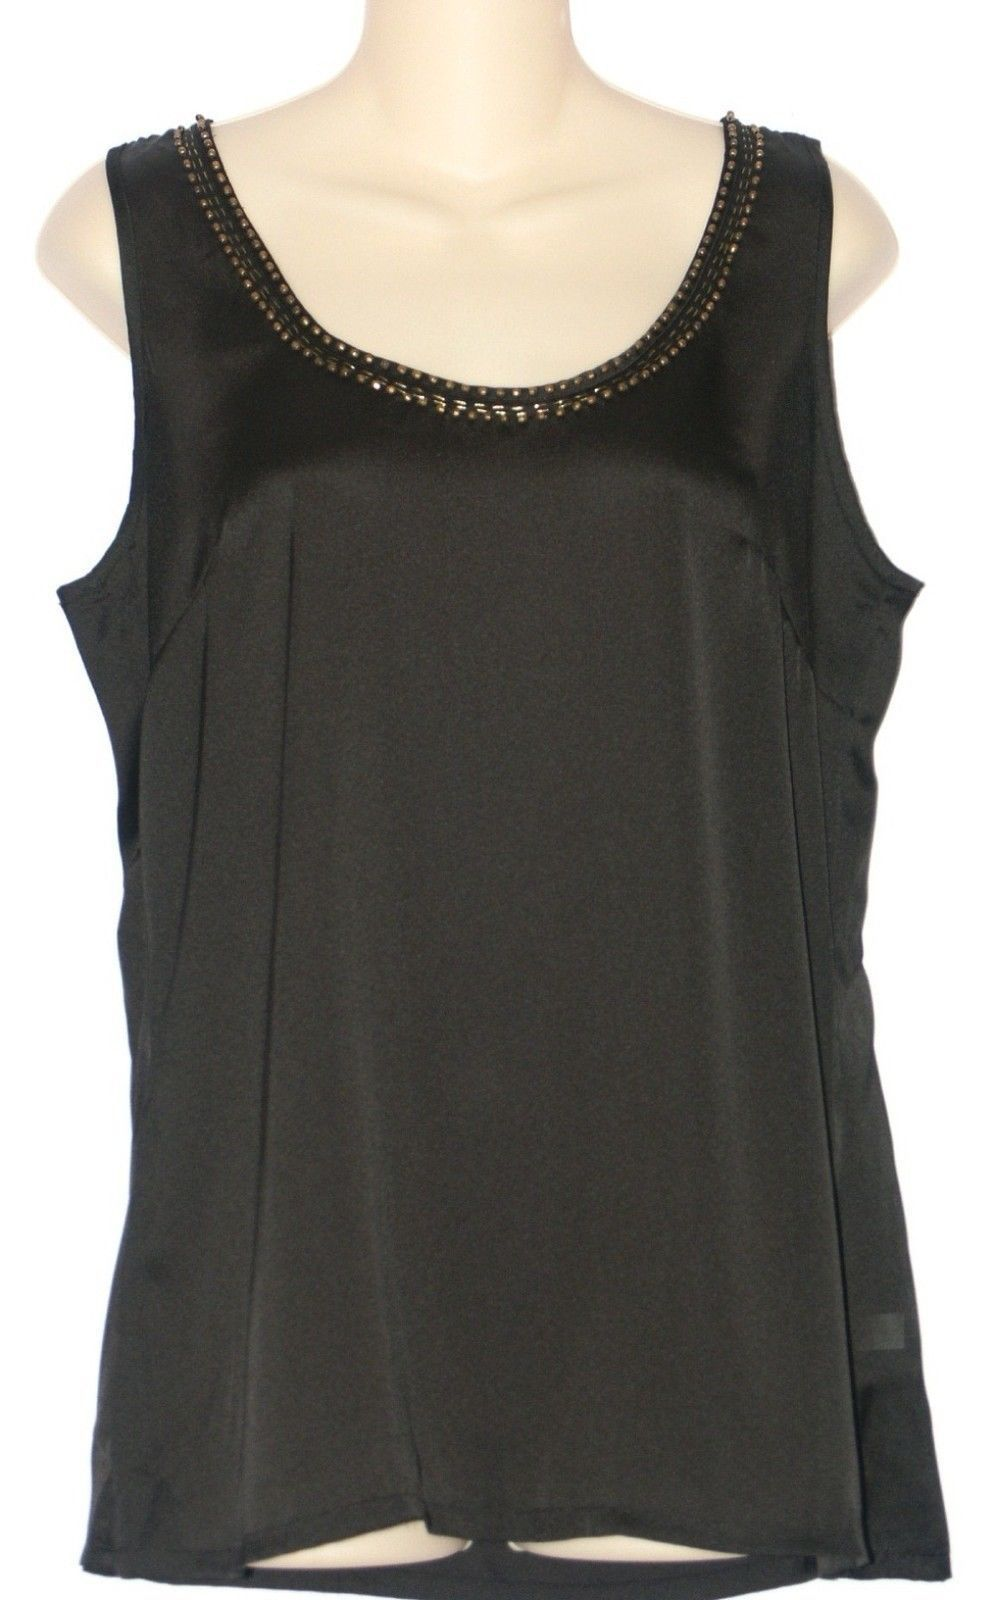 Apt 9 Tank Top: 11 listings